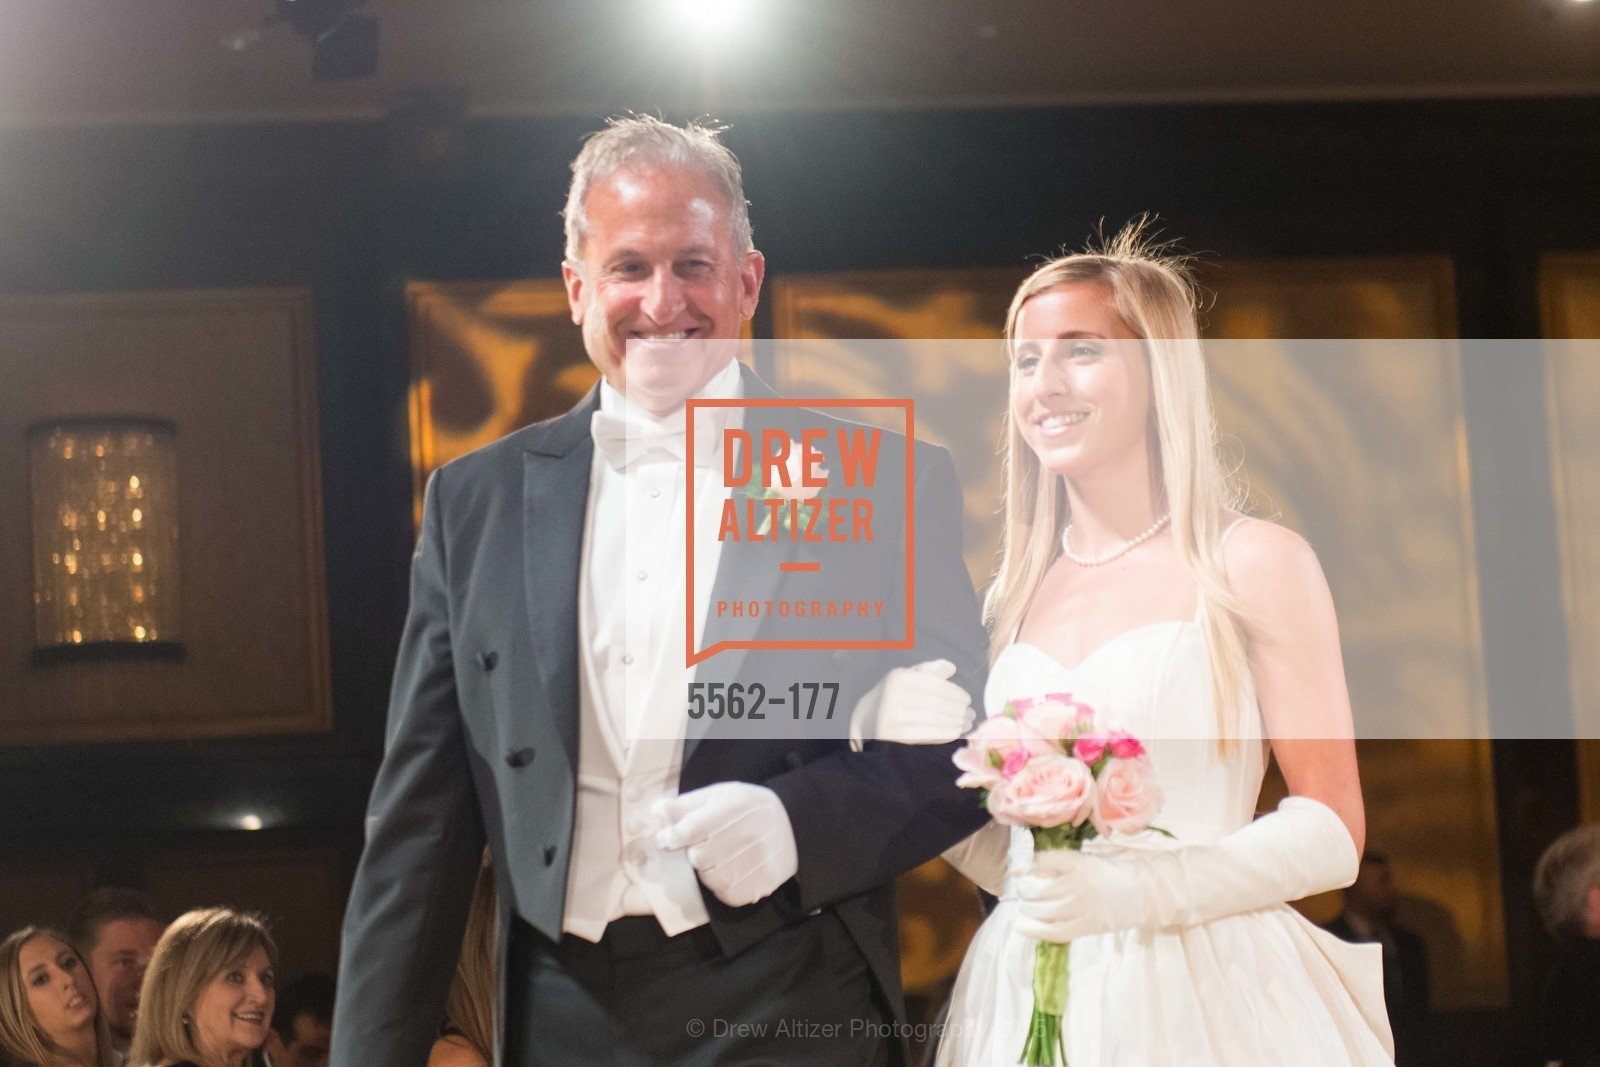 Presentation, The 2015 San Francisco Debutante Ball, June 20th, 2015, Photo,Drew Altizer, Drew Altizer Photography, full-service event agency, private events, San Francisco photographer, photographer California